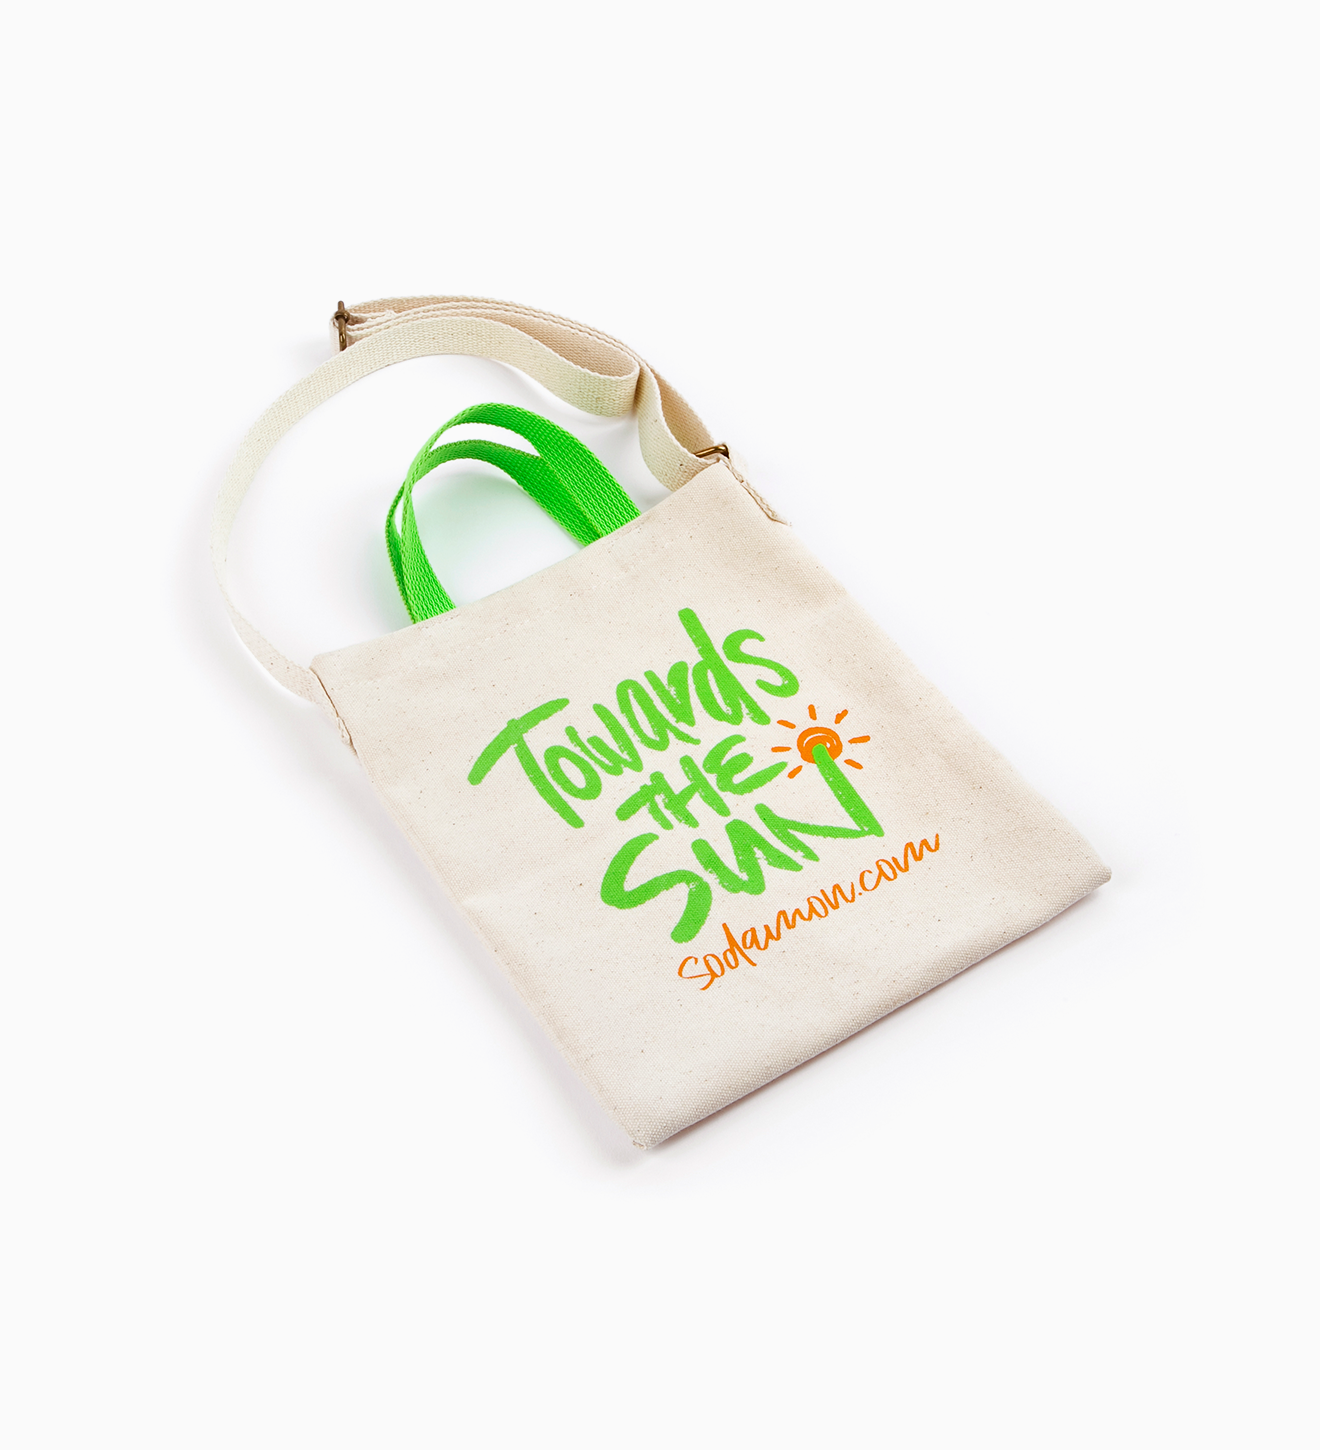 Towards the Sun KIDS ECO BAG